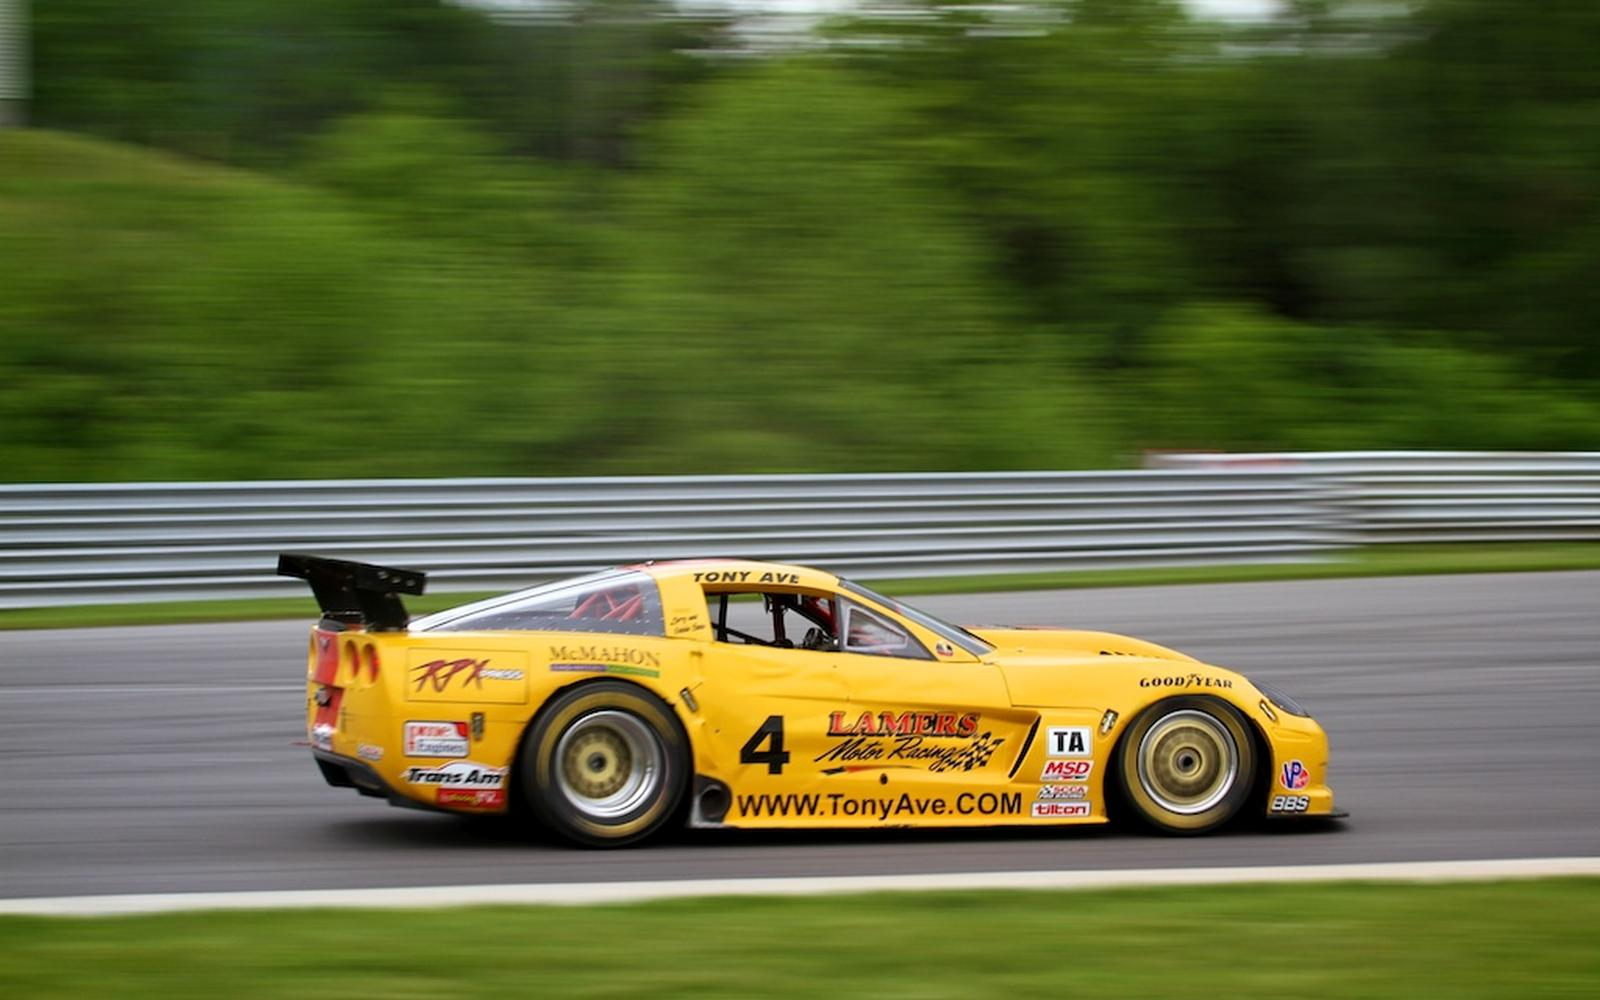 Tony Ave Grabs Trans Am Pole At Lime Rock - Halsmer Fastest In TA2